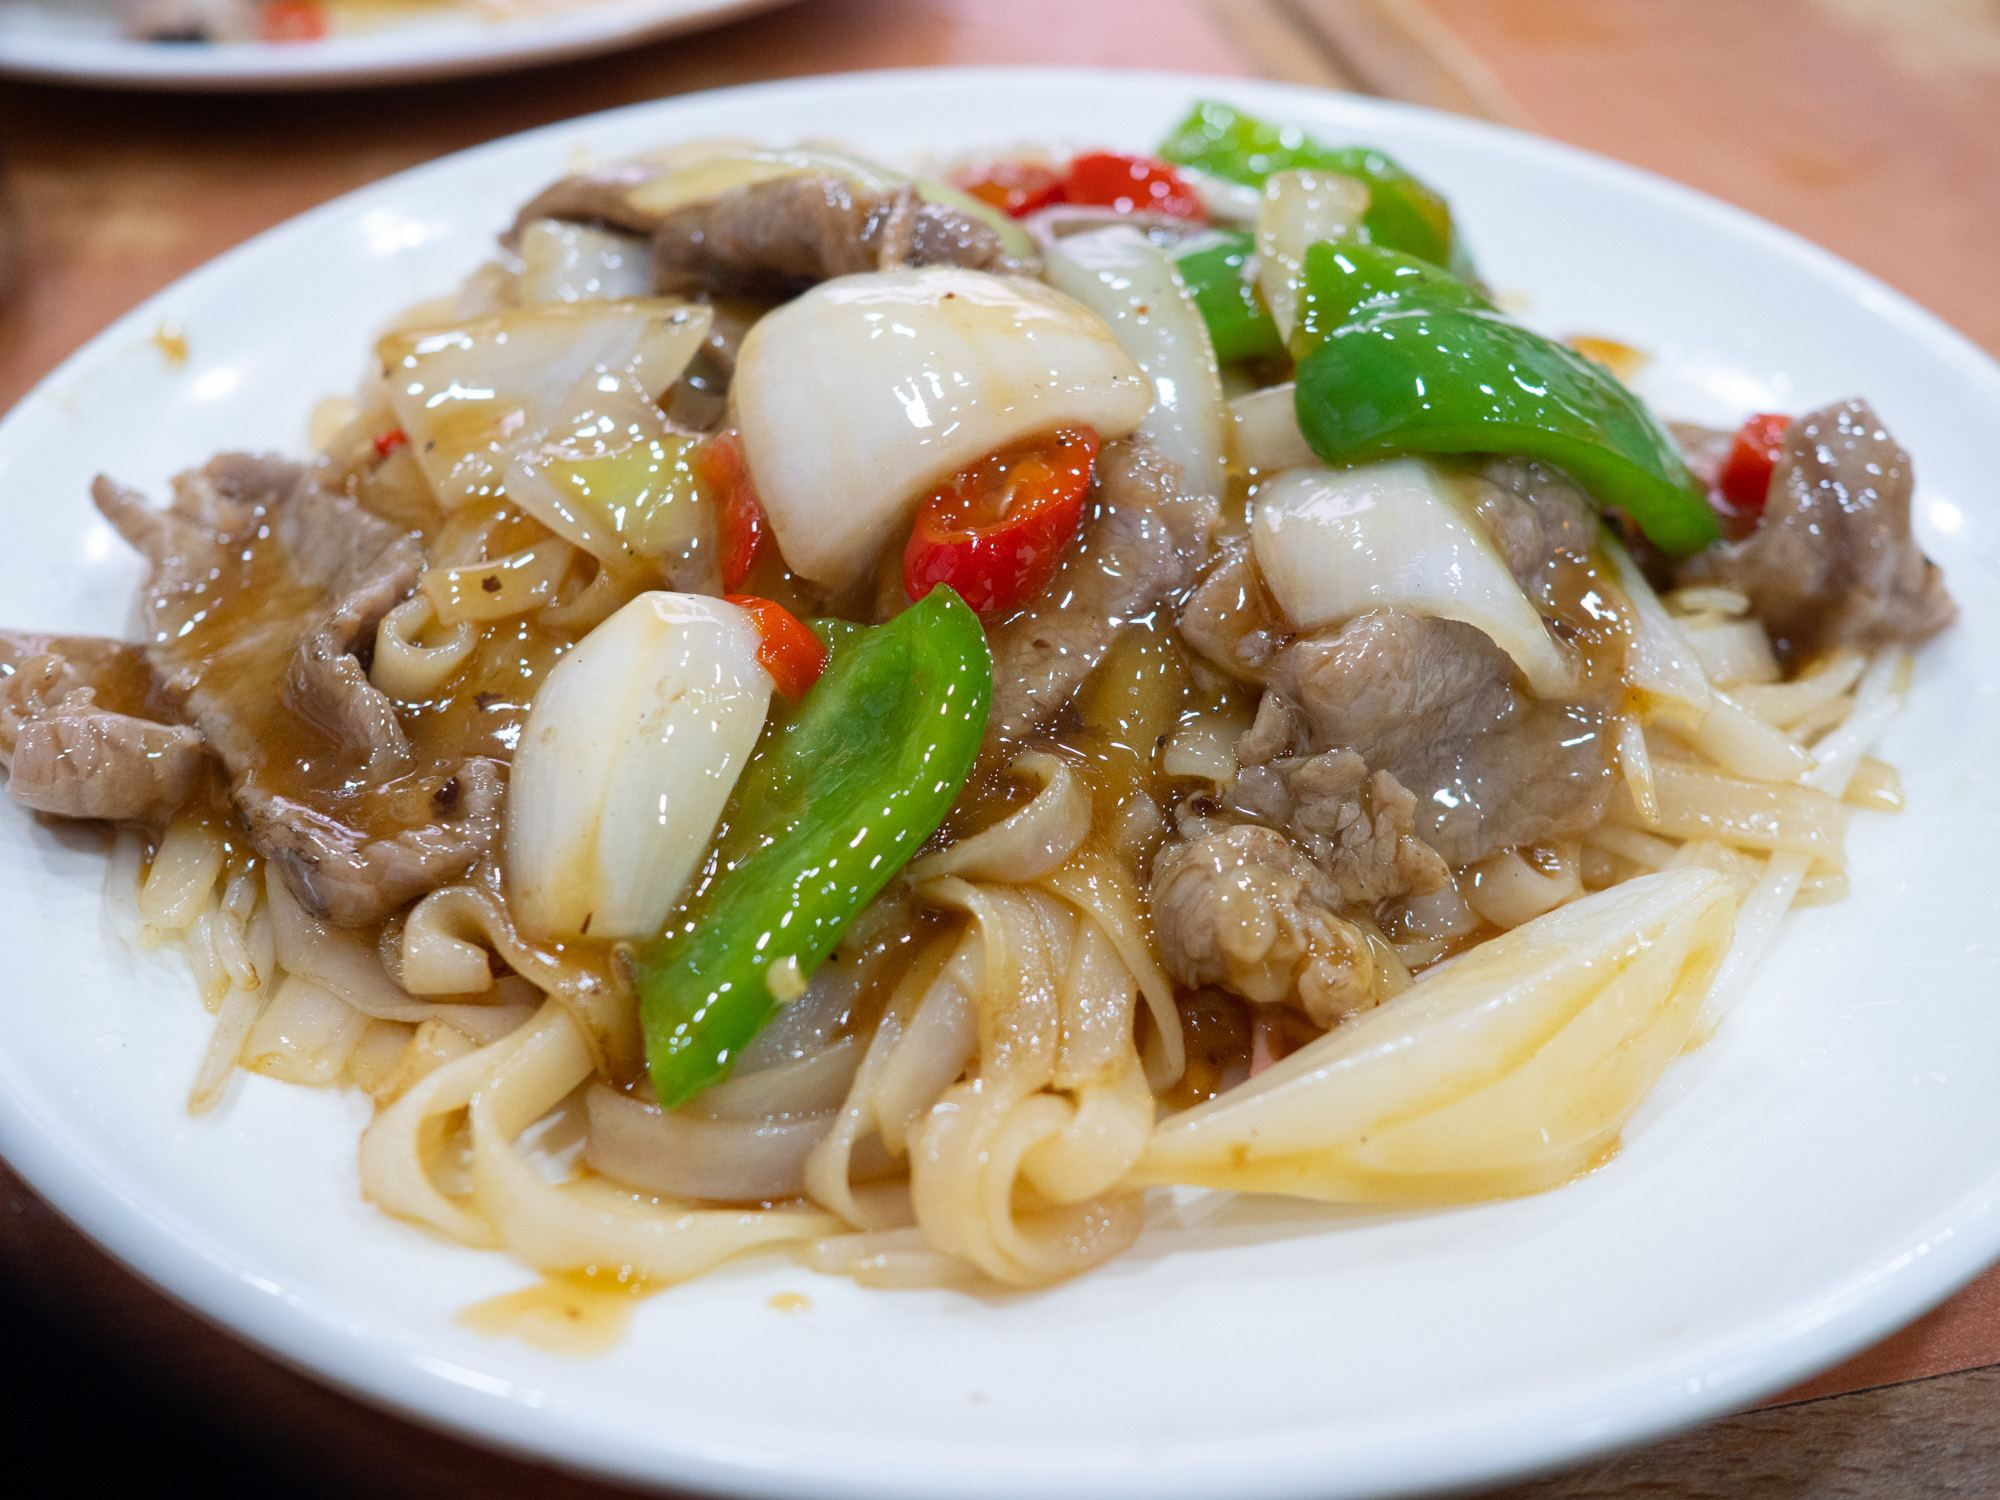 Fantastic, the noodles almost have the same consistency as hand pulled noodles, and the beef gravy is so smooth and enjoyable.